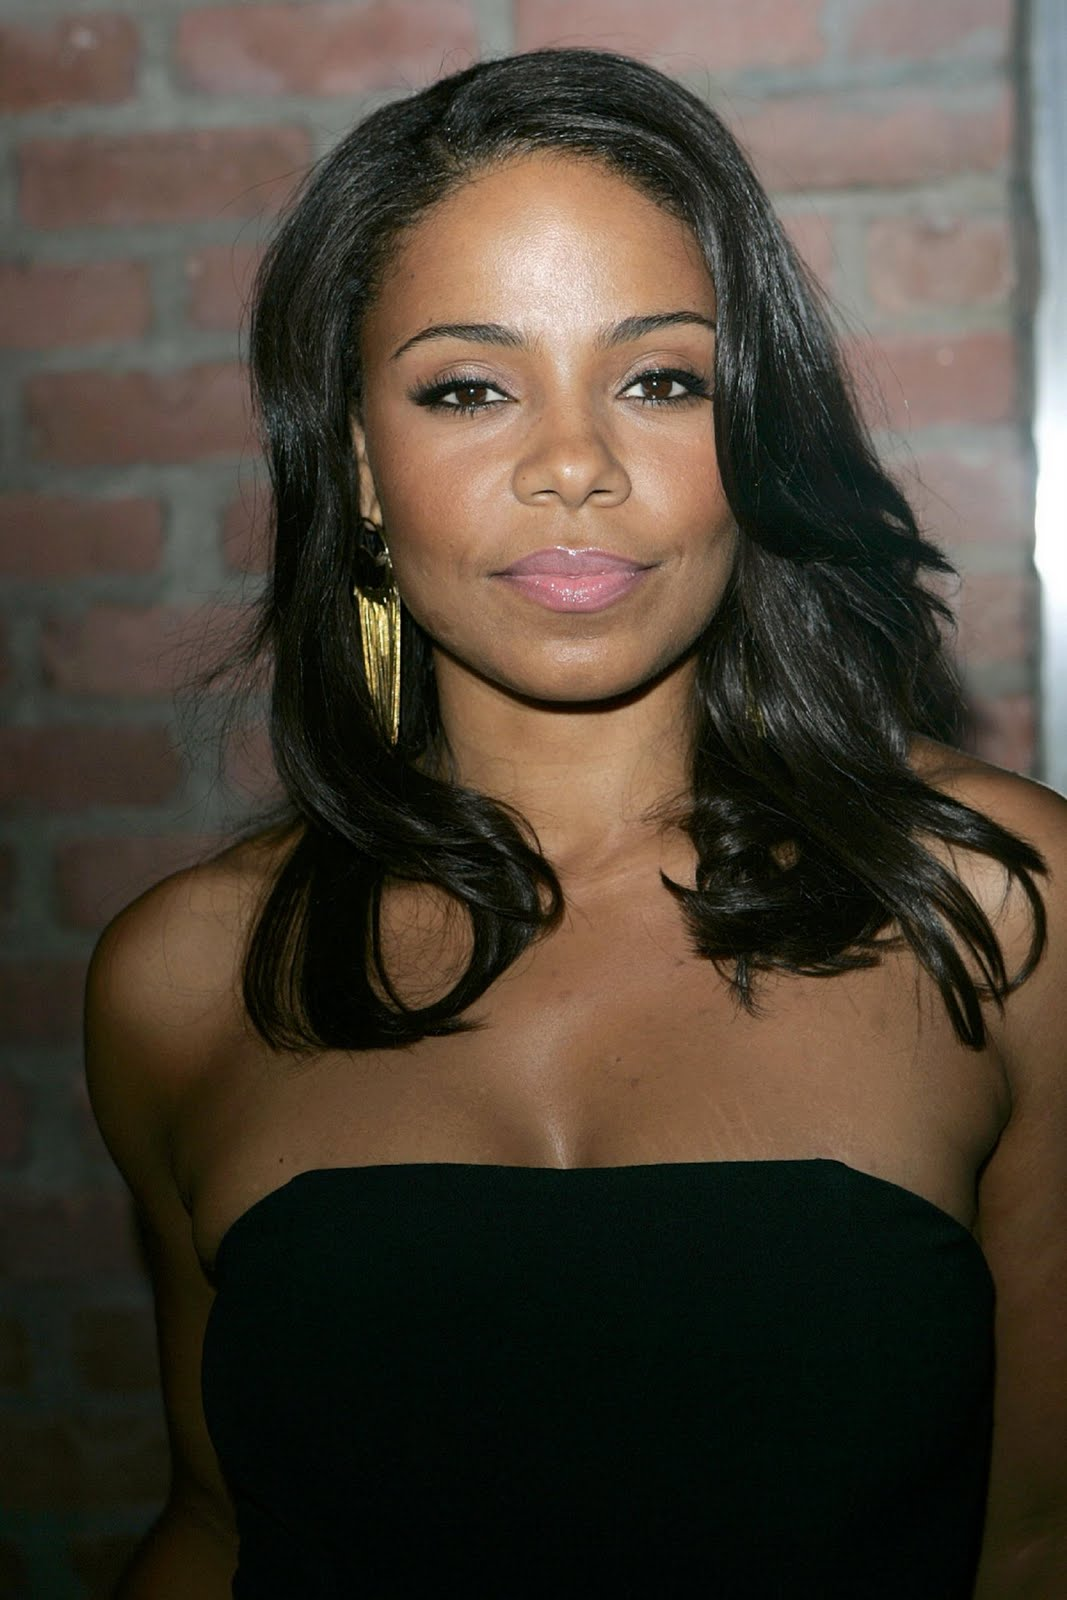 Sanaa Lathan Medium Length Black Curly Hairstyles Hairstyles Pictures